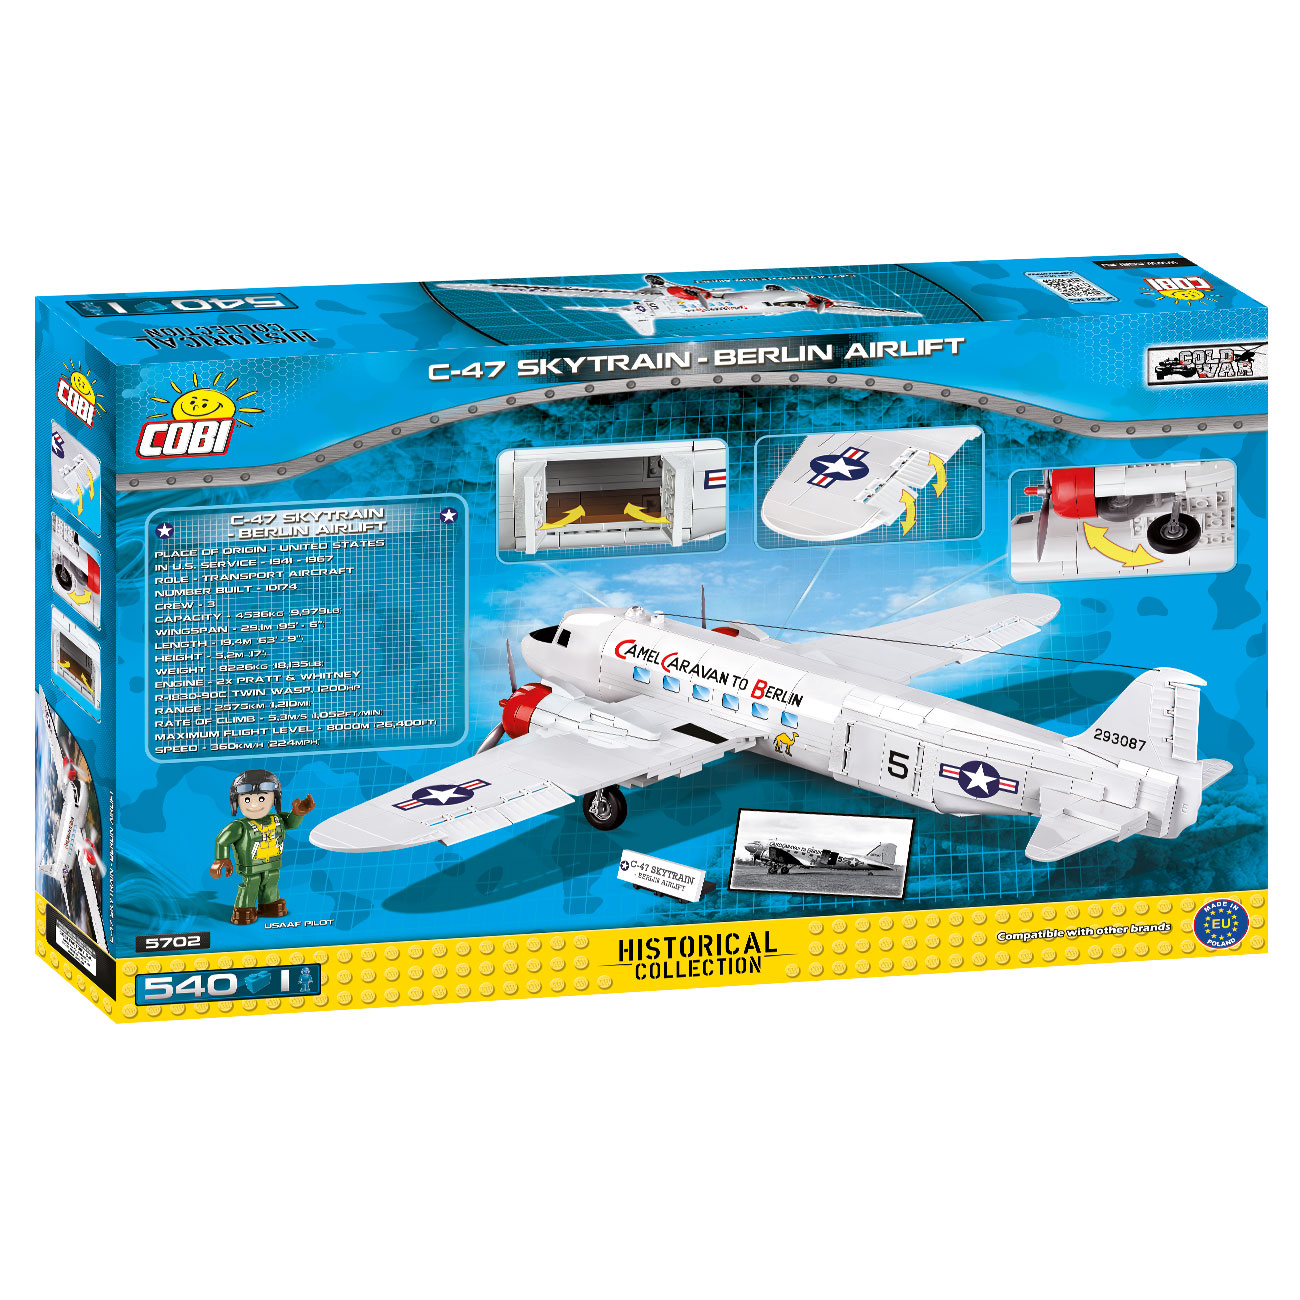 Cobi Historical Collection Bausatz Flugzeug C-47 Skytrain - Berlin Airlift 540 Teile 5702 4